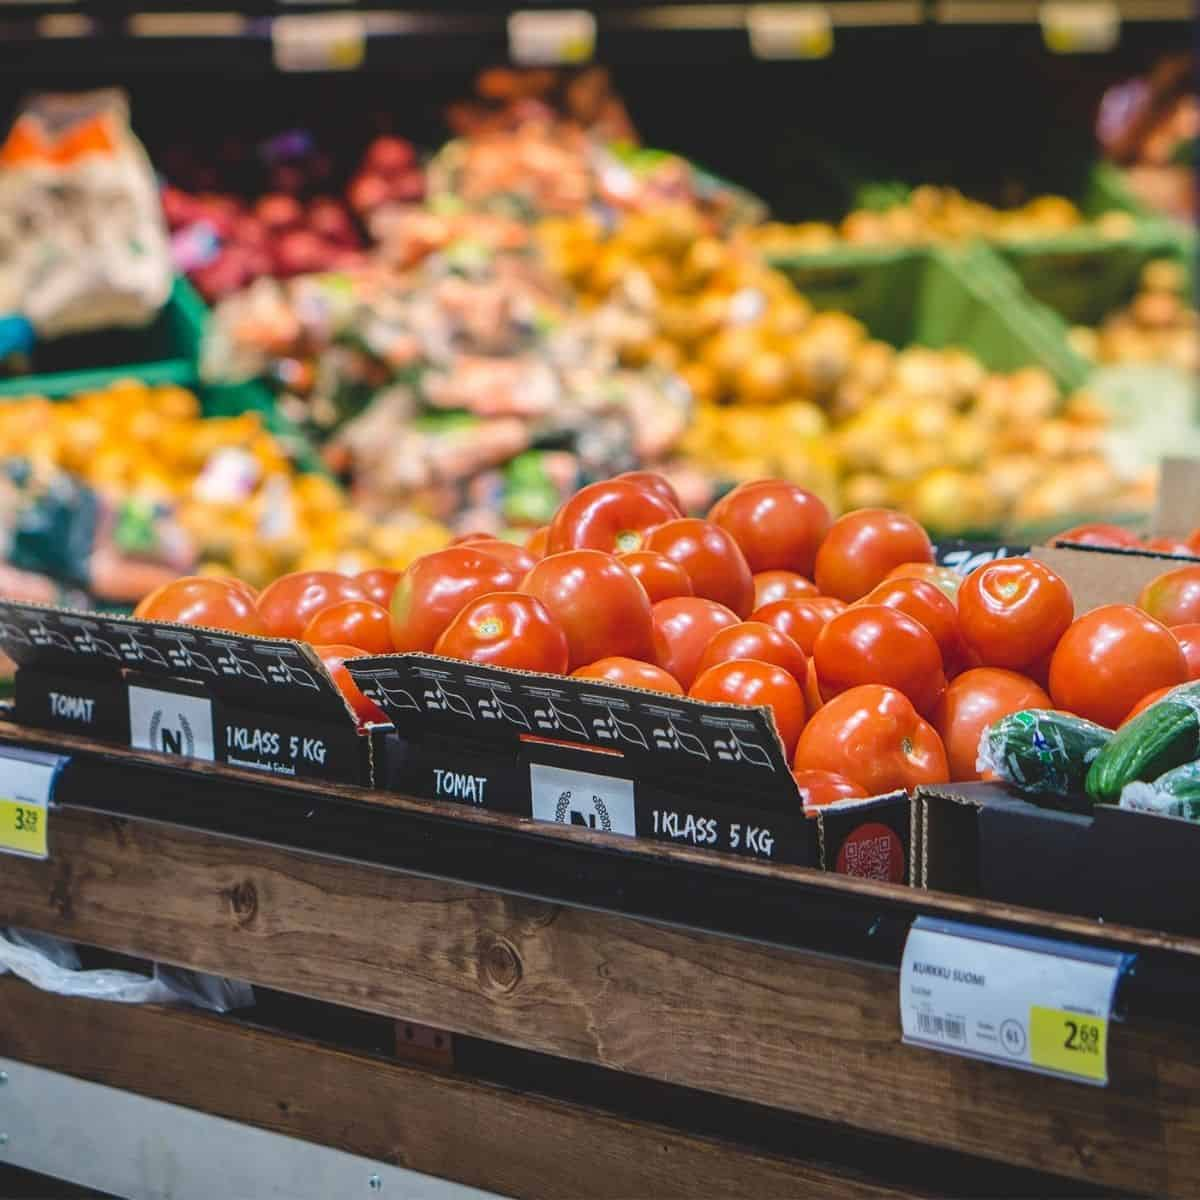 fresh fruits and vegetables aisle in grocery store.